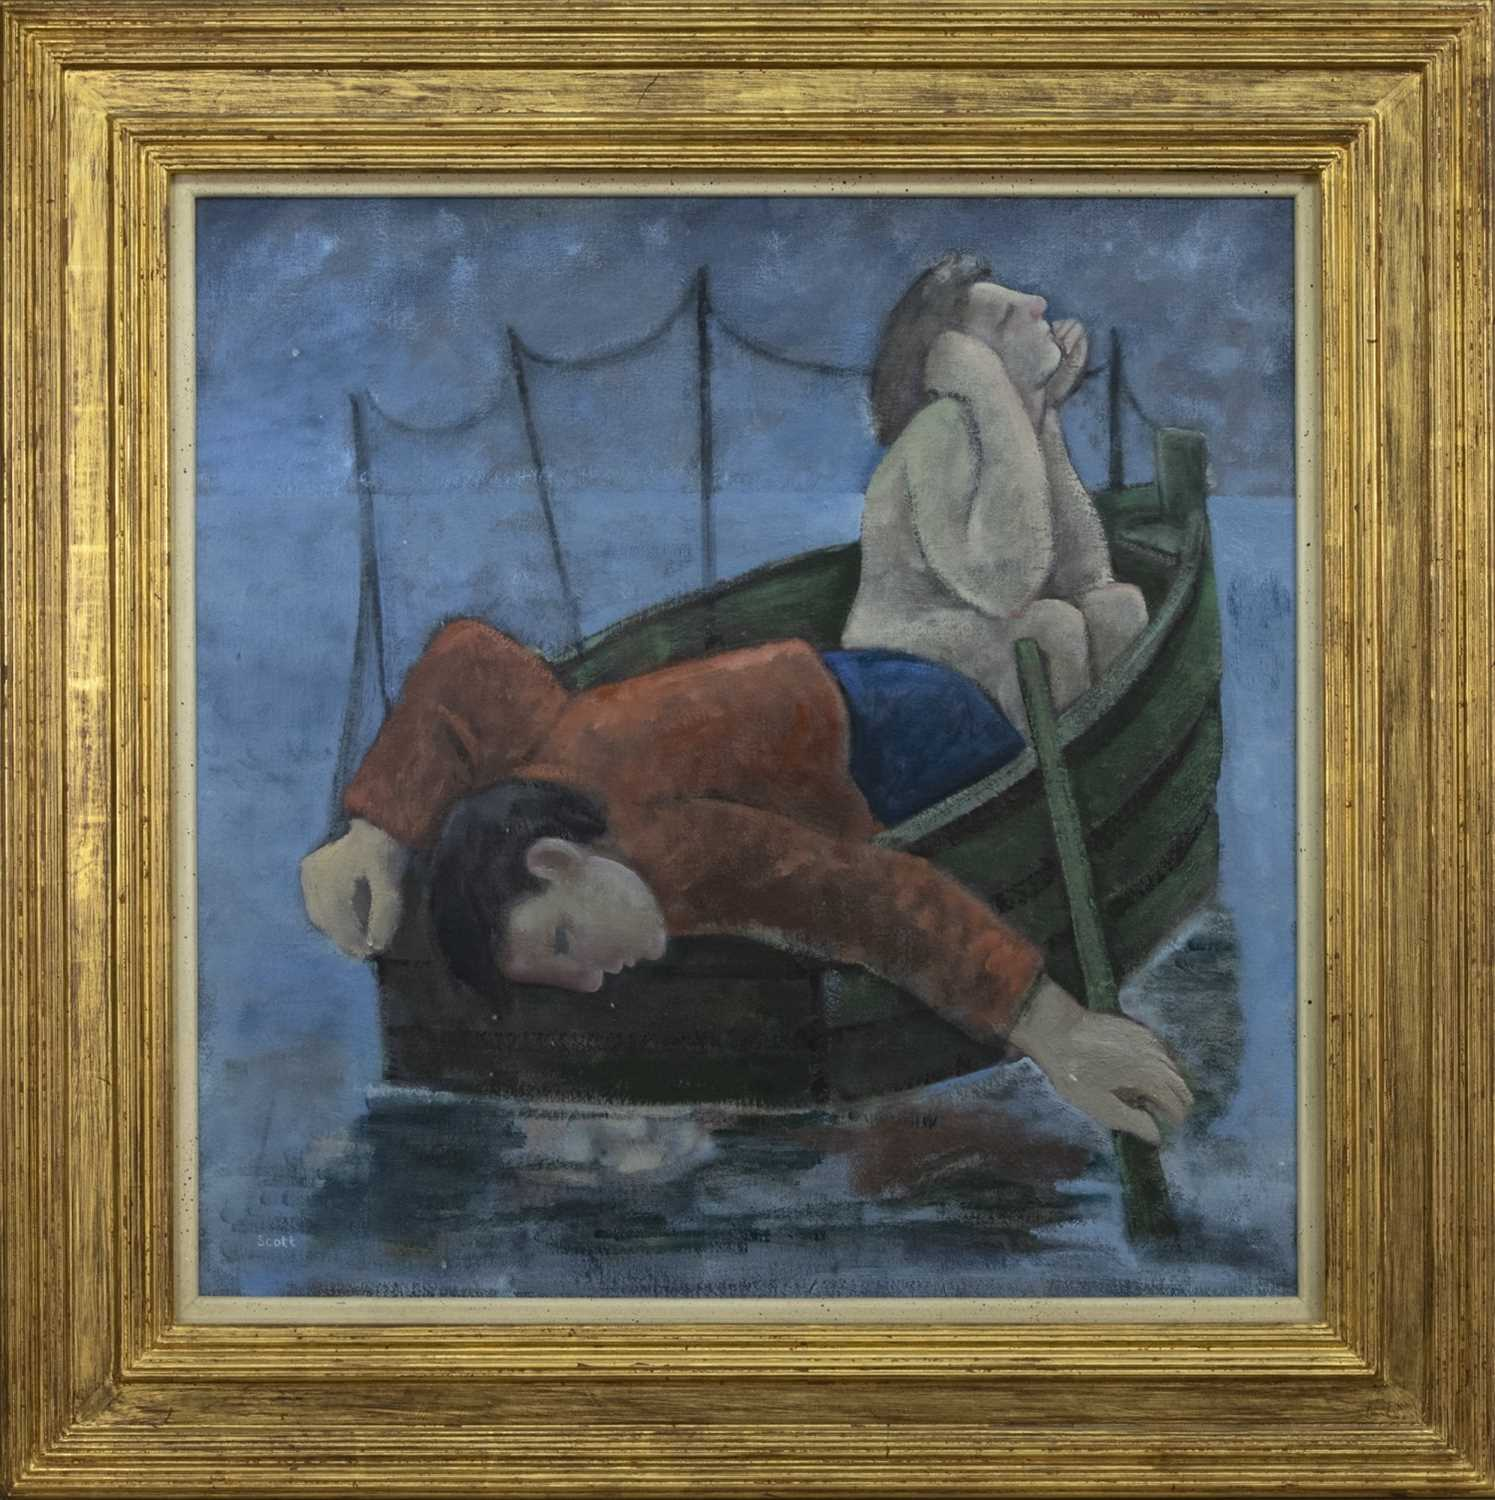 Lot 599 - ECHO & NARCISSUS, AN OIL BY MICHAEL SCOTT